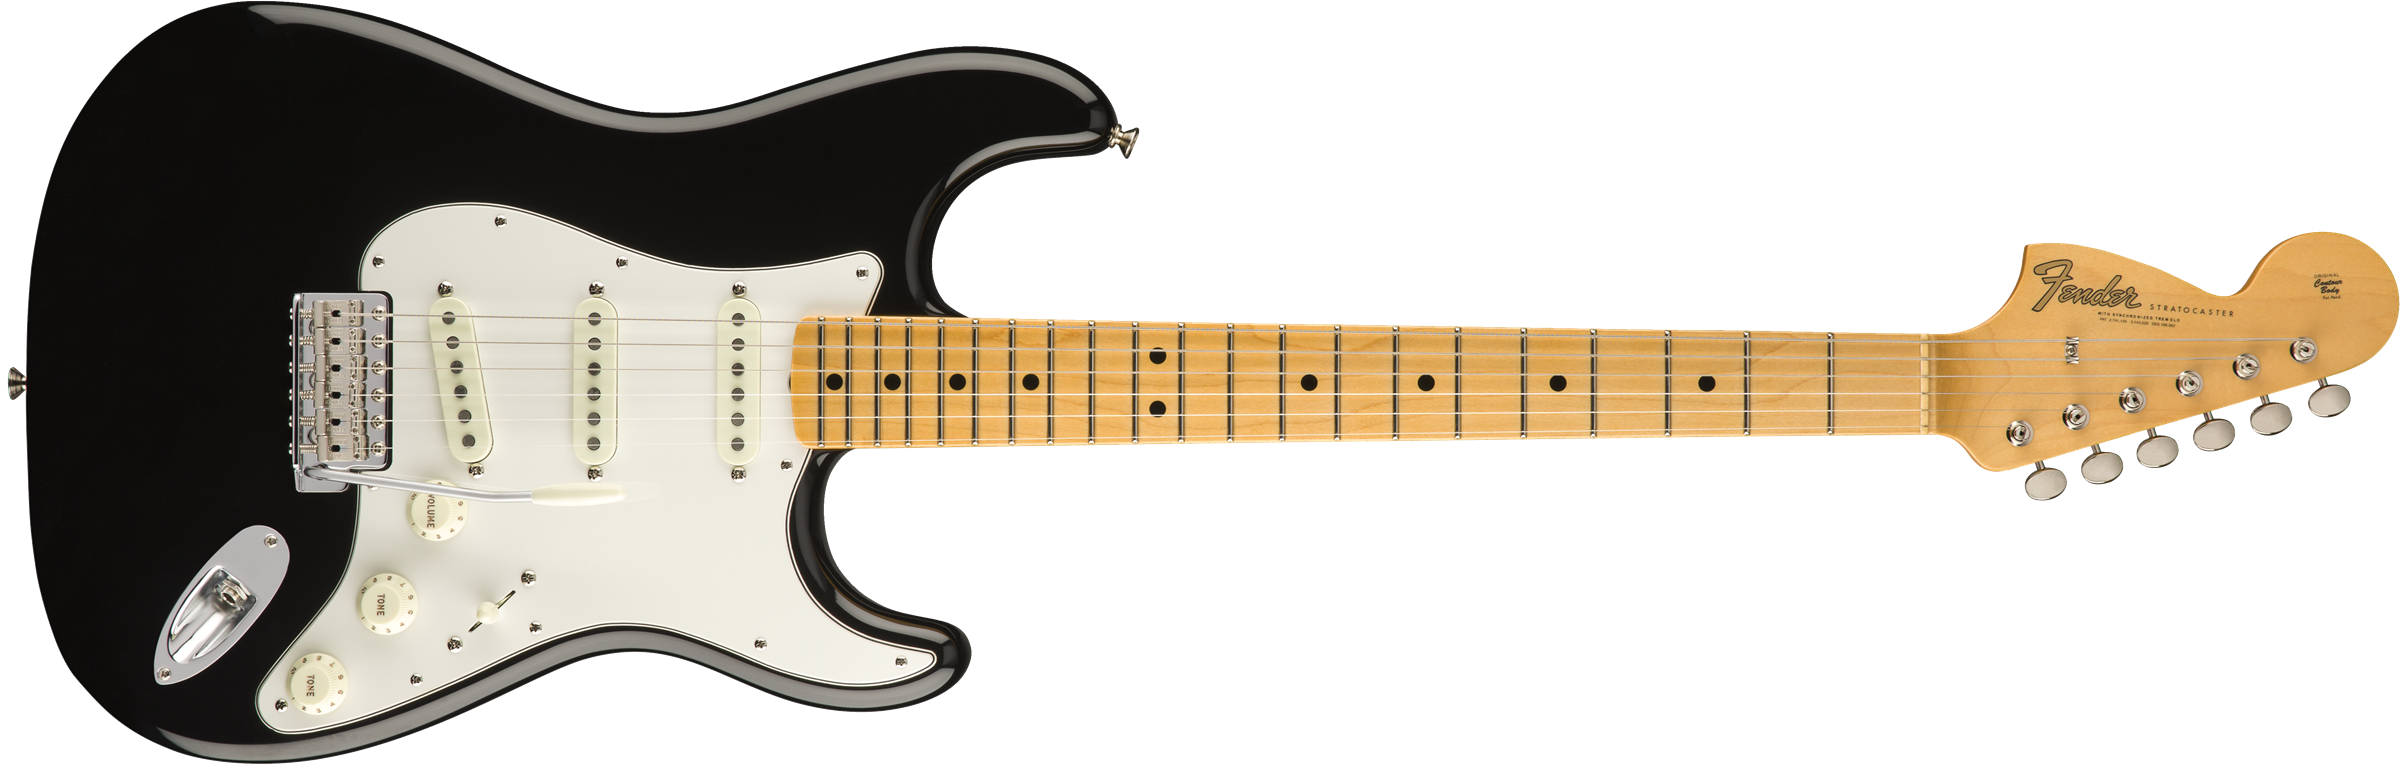 FENDER-Jimi-Hendrix-Voodoo-Child-Signature-Stratocaster-NOS-Maple-Fingerboard-Black-sku-571004345